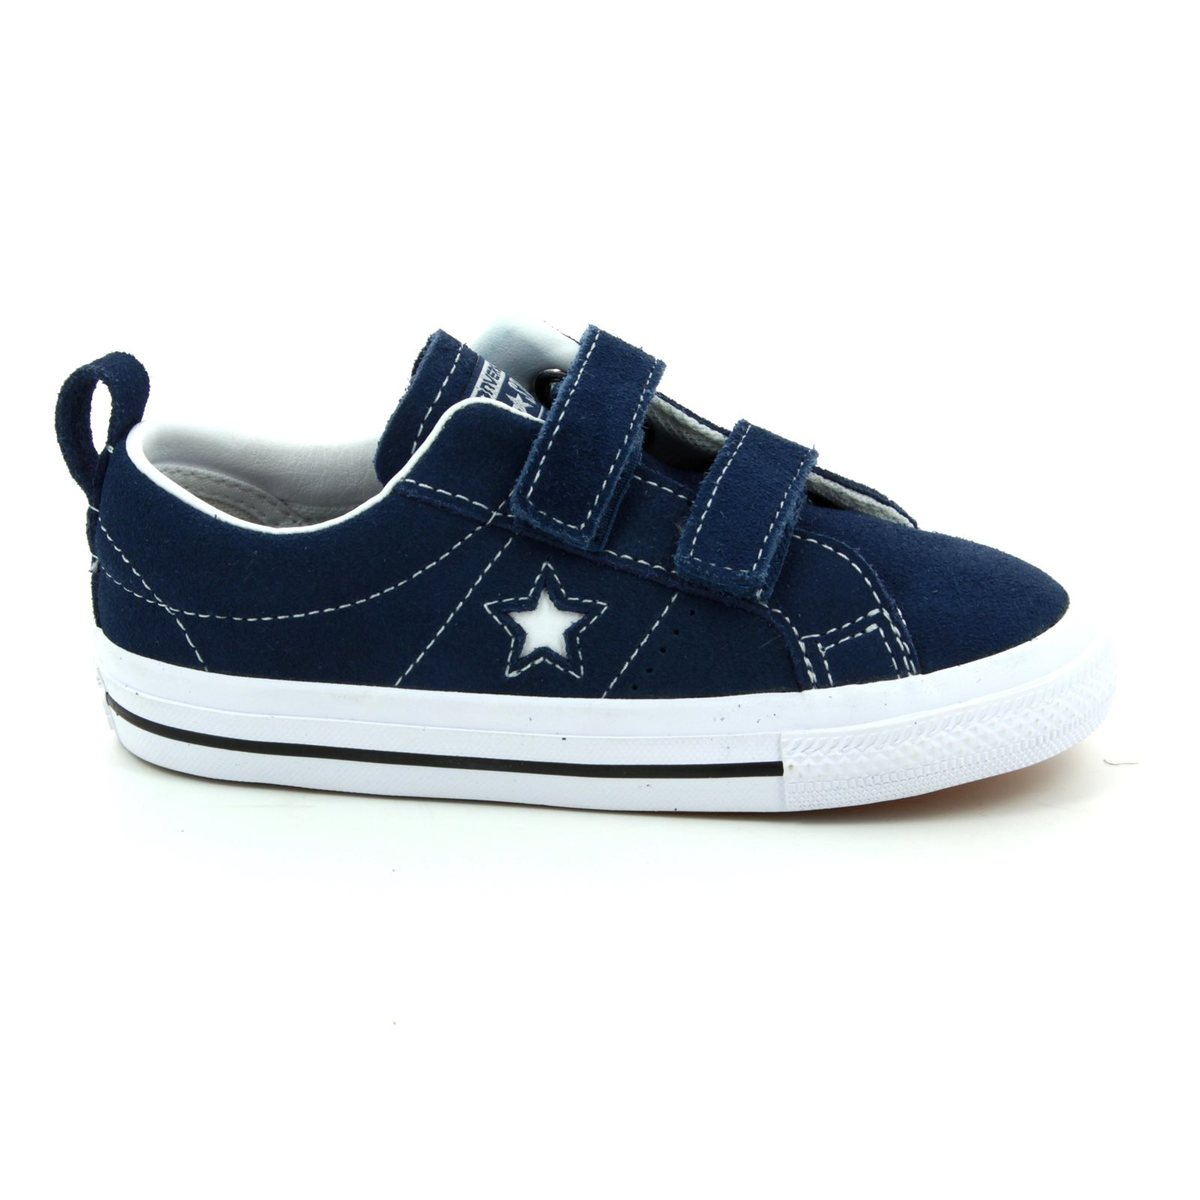 Converse One Star 2v Ox Infant Shoes Infant NZ Navy